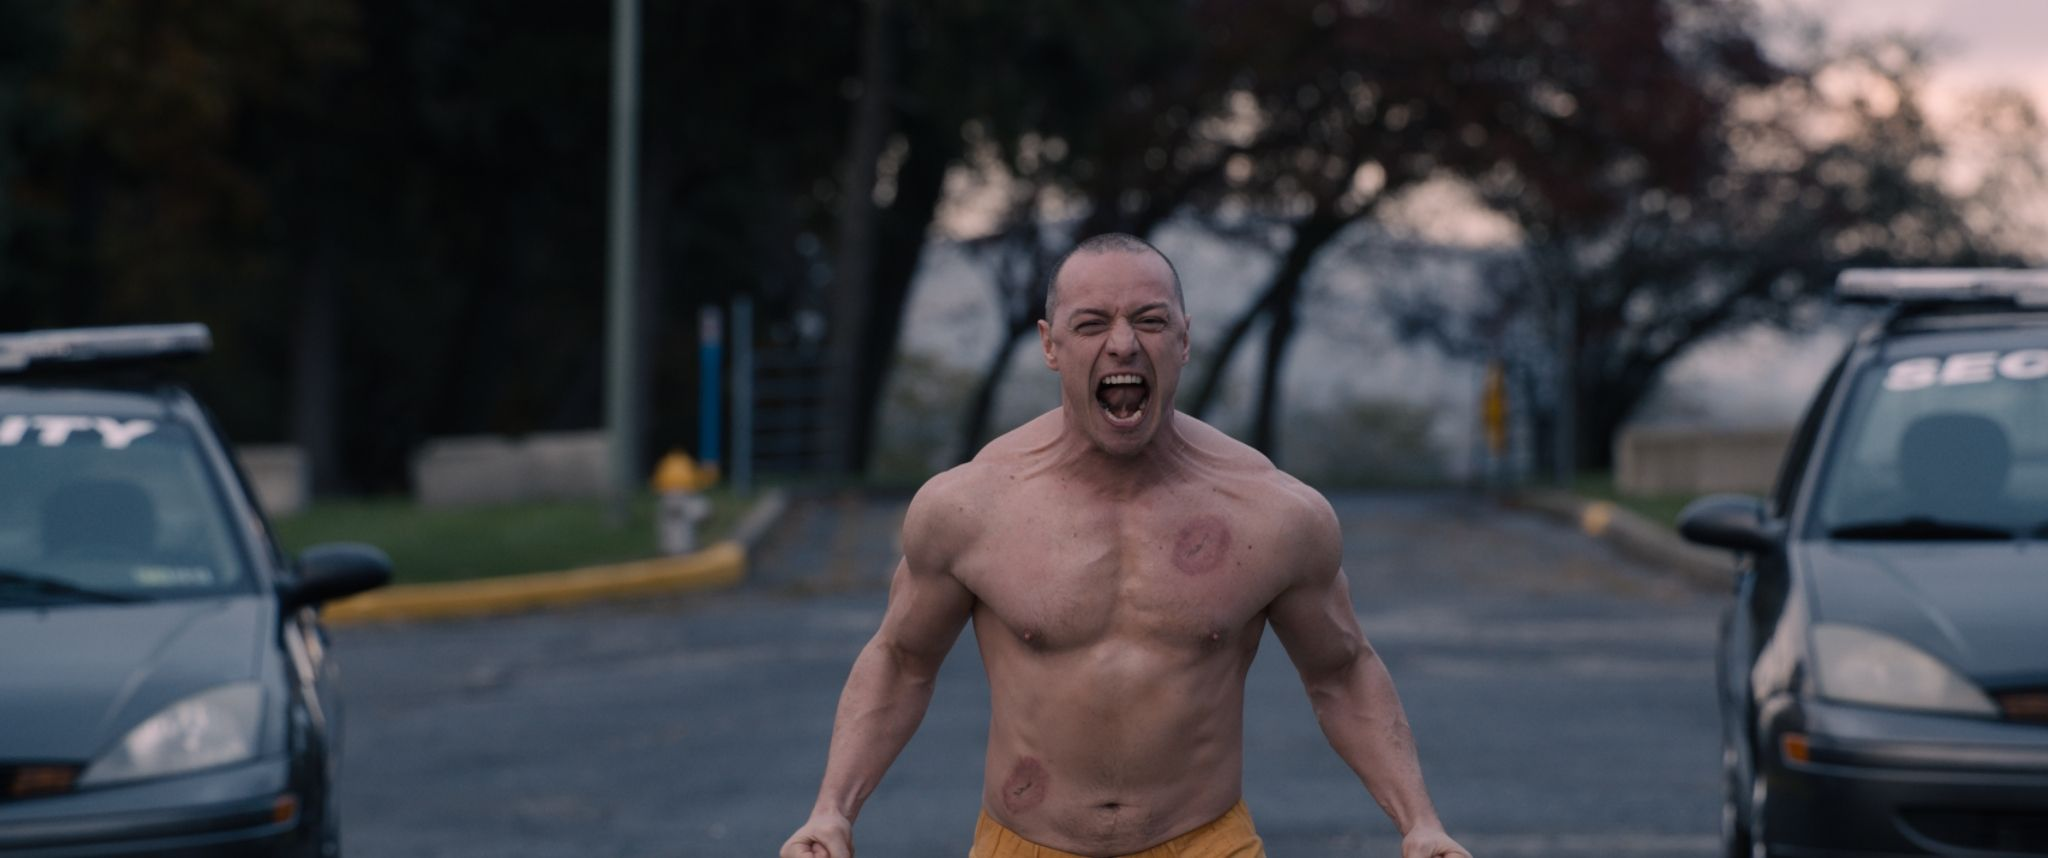 Movie Poster 2019: Glass: New Trailer Amps Up The Comic Book Action